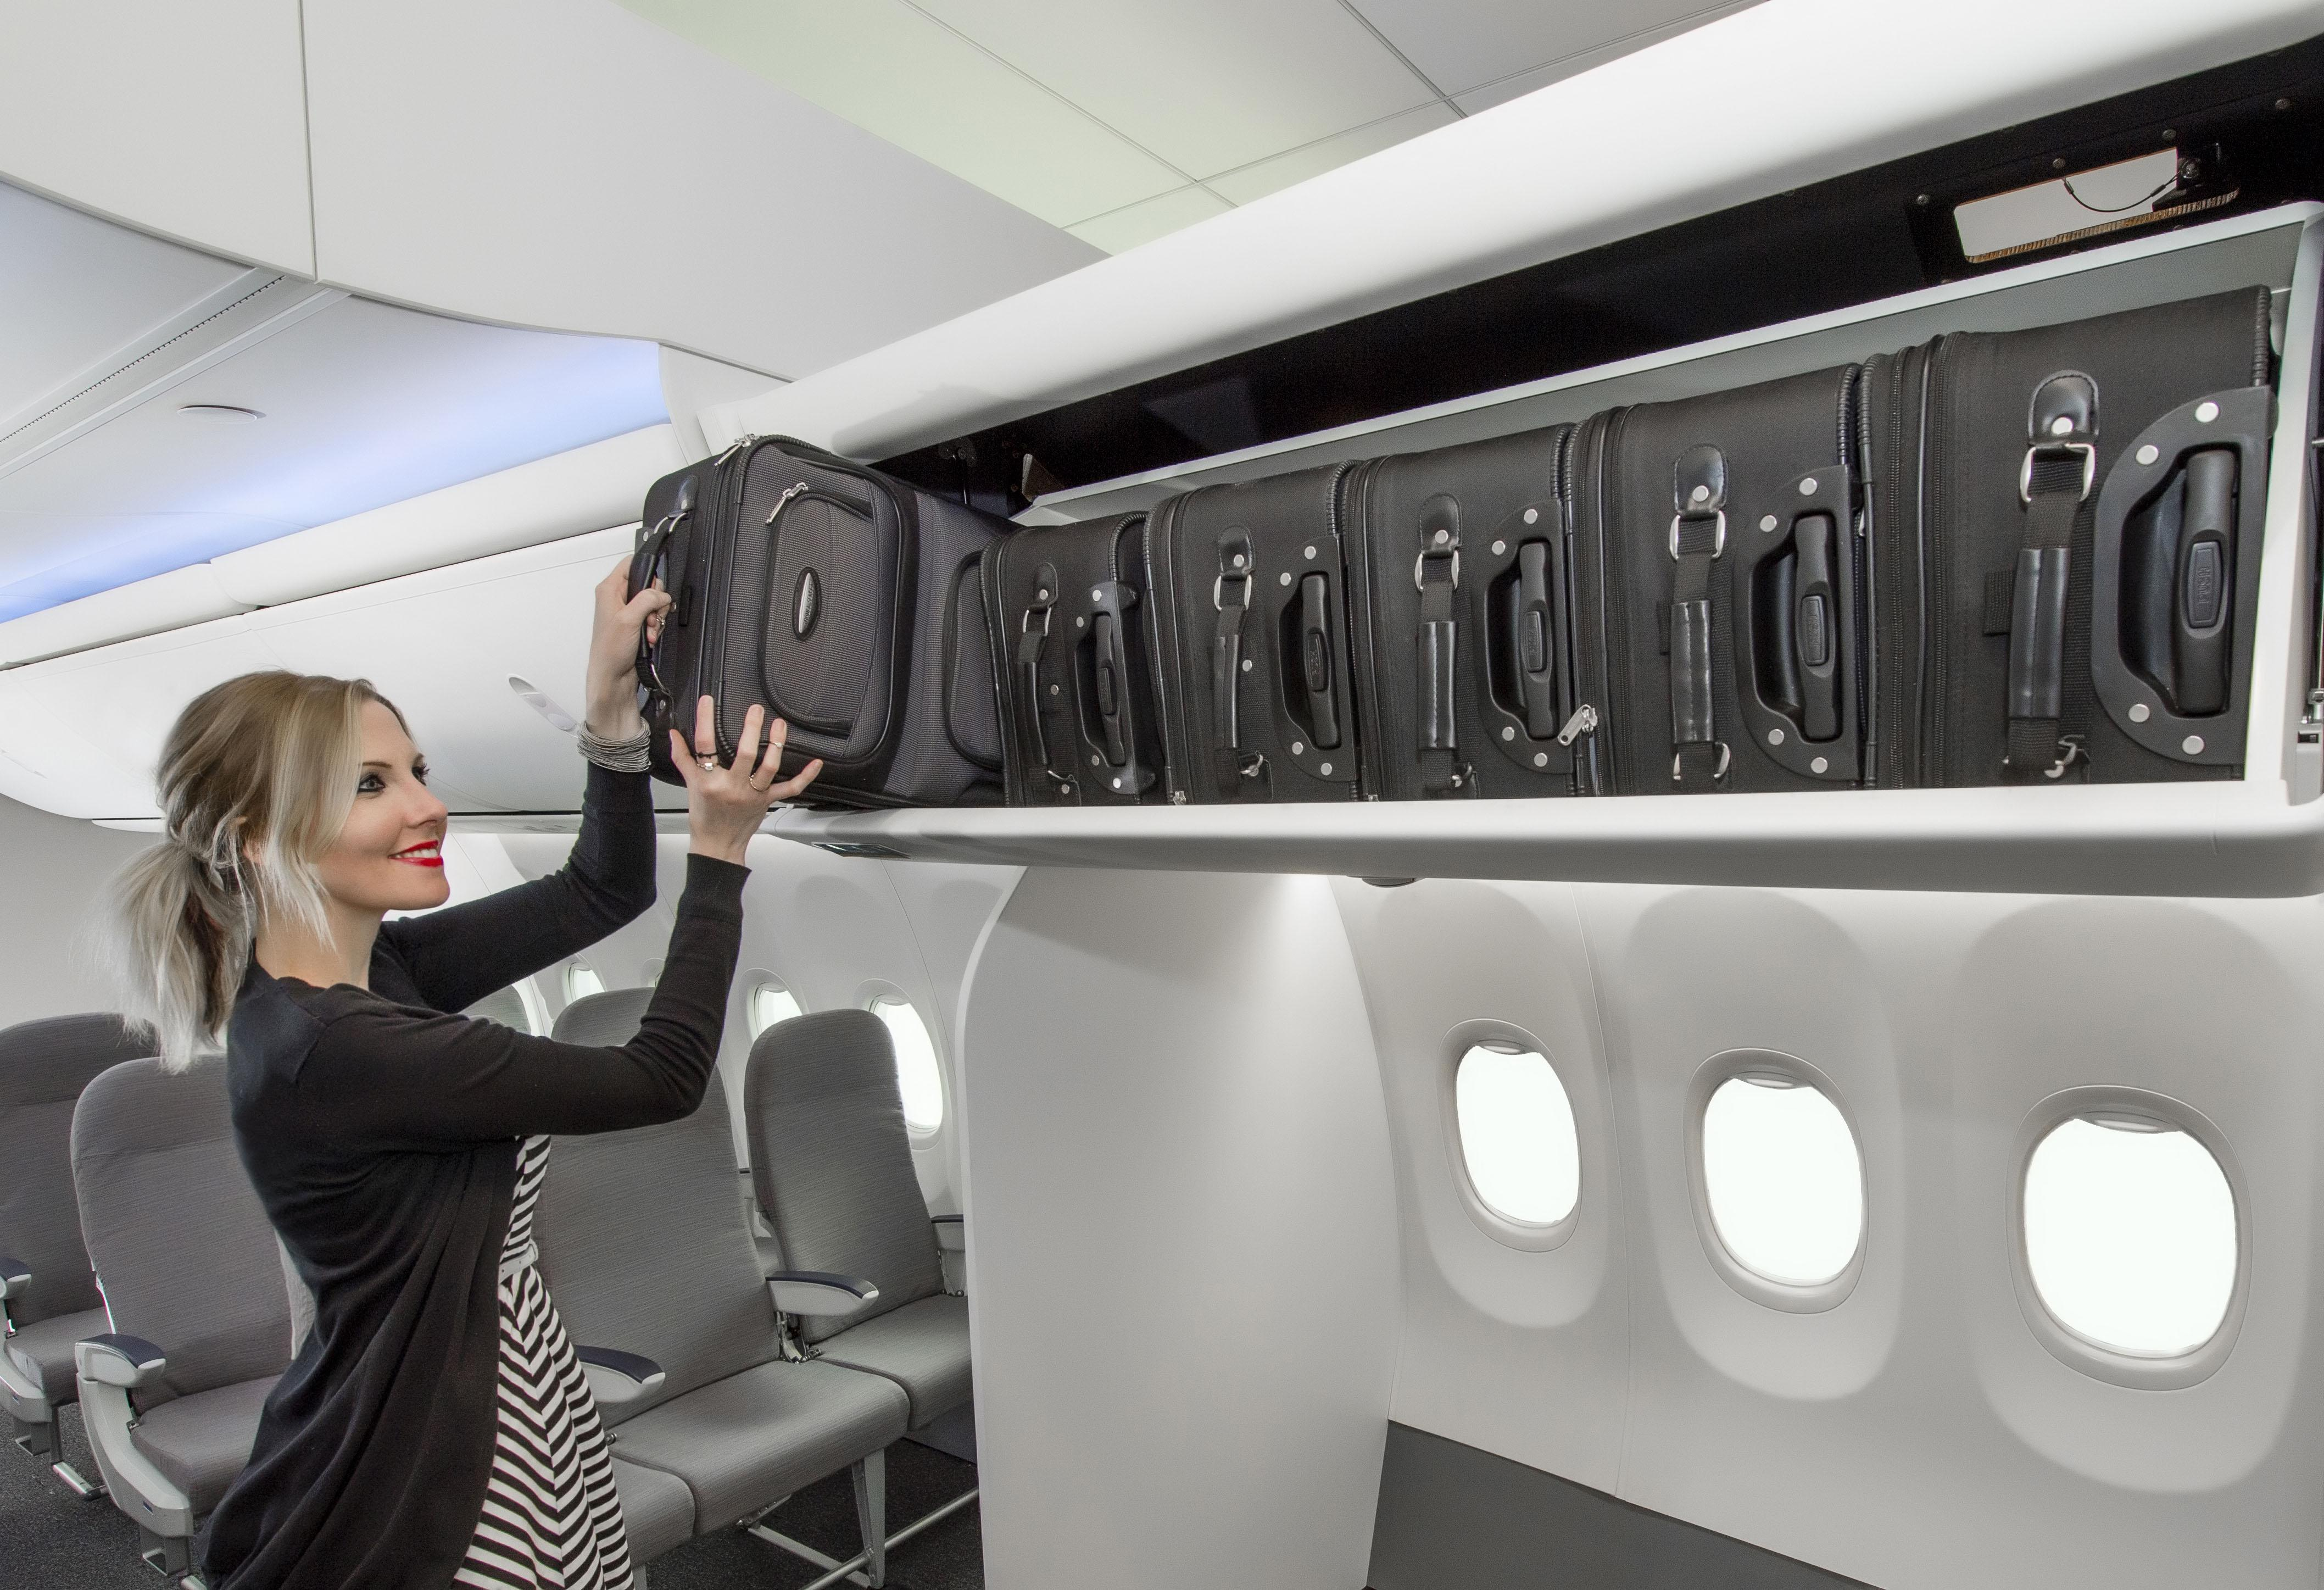 Image: Boeing's new Space Bins stow six standard carry-on bags.